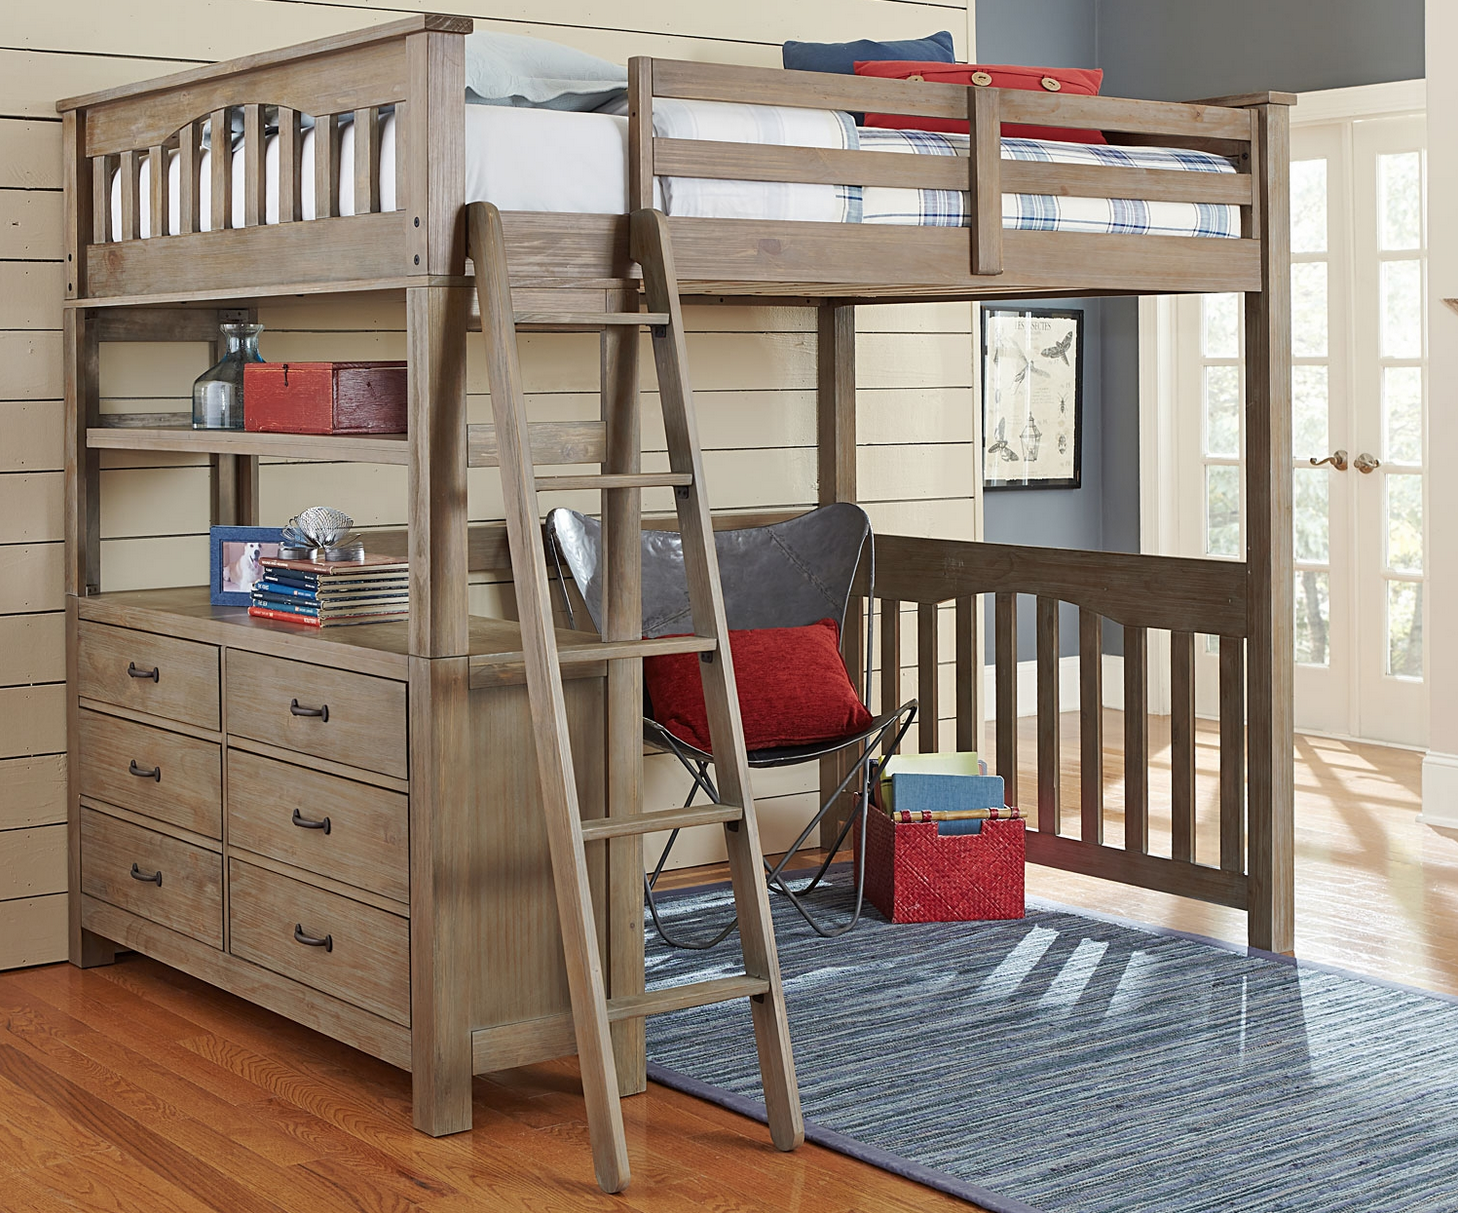 Picture of: Loft Bed Full Royals Courage Queen Loft Bed For Grownup